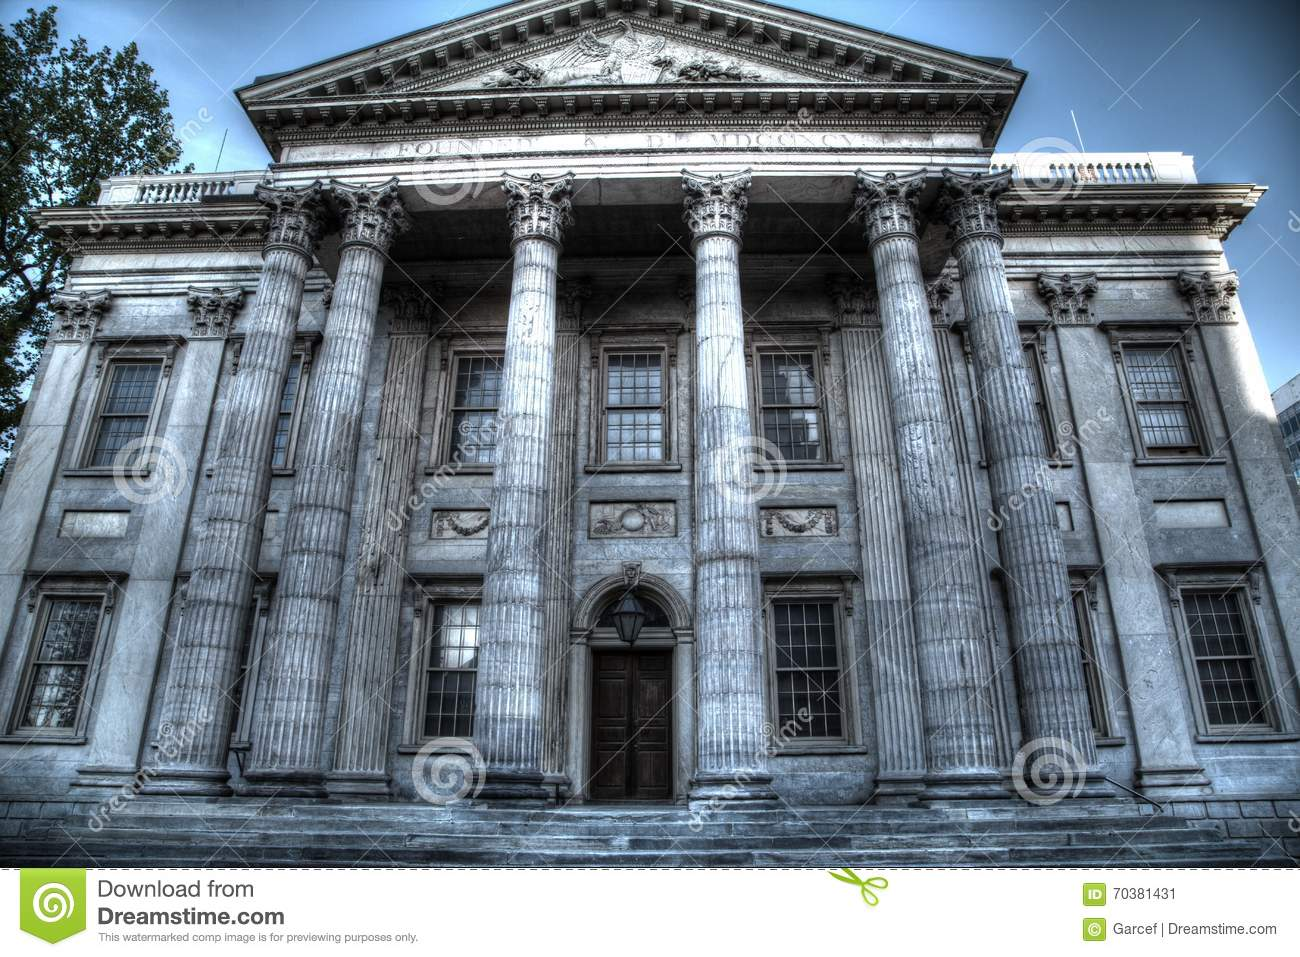 First Bank of the United States in Philadelphia